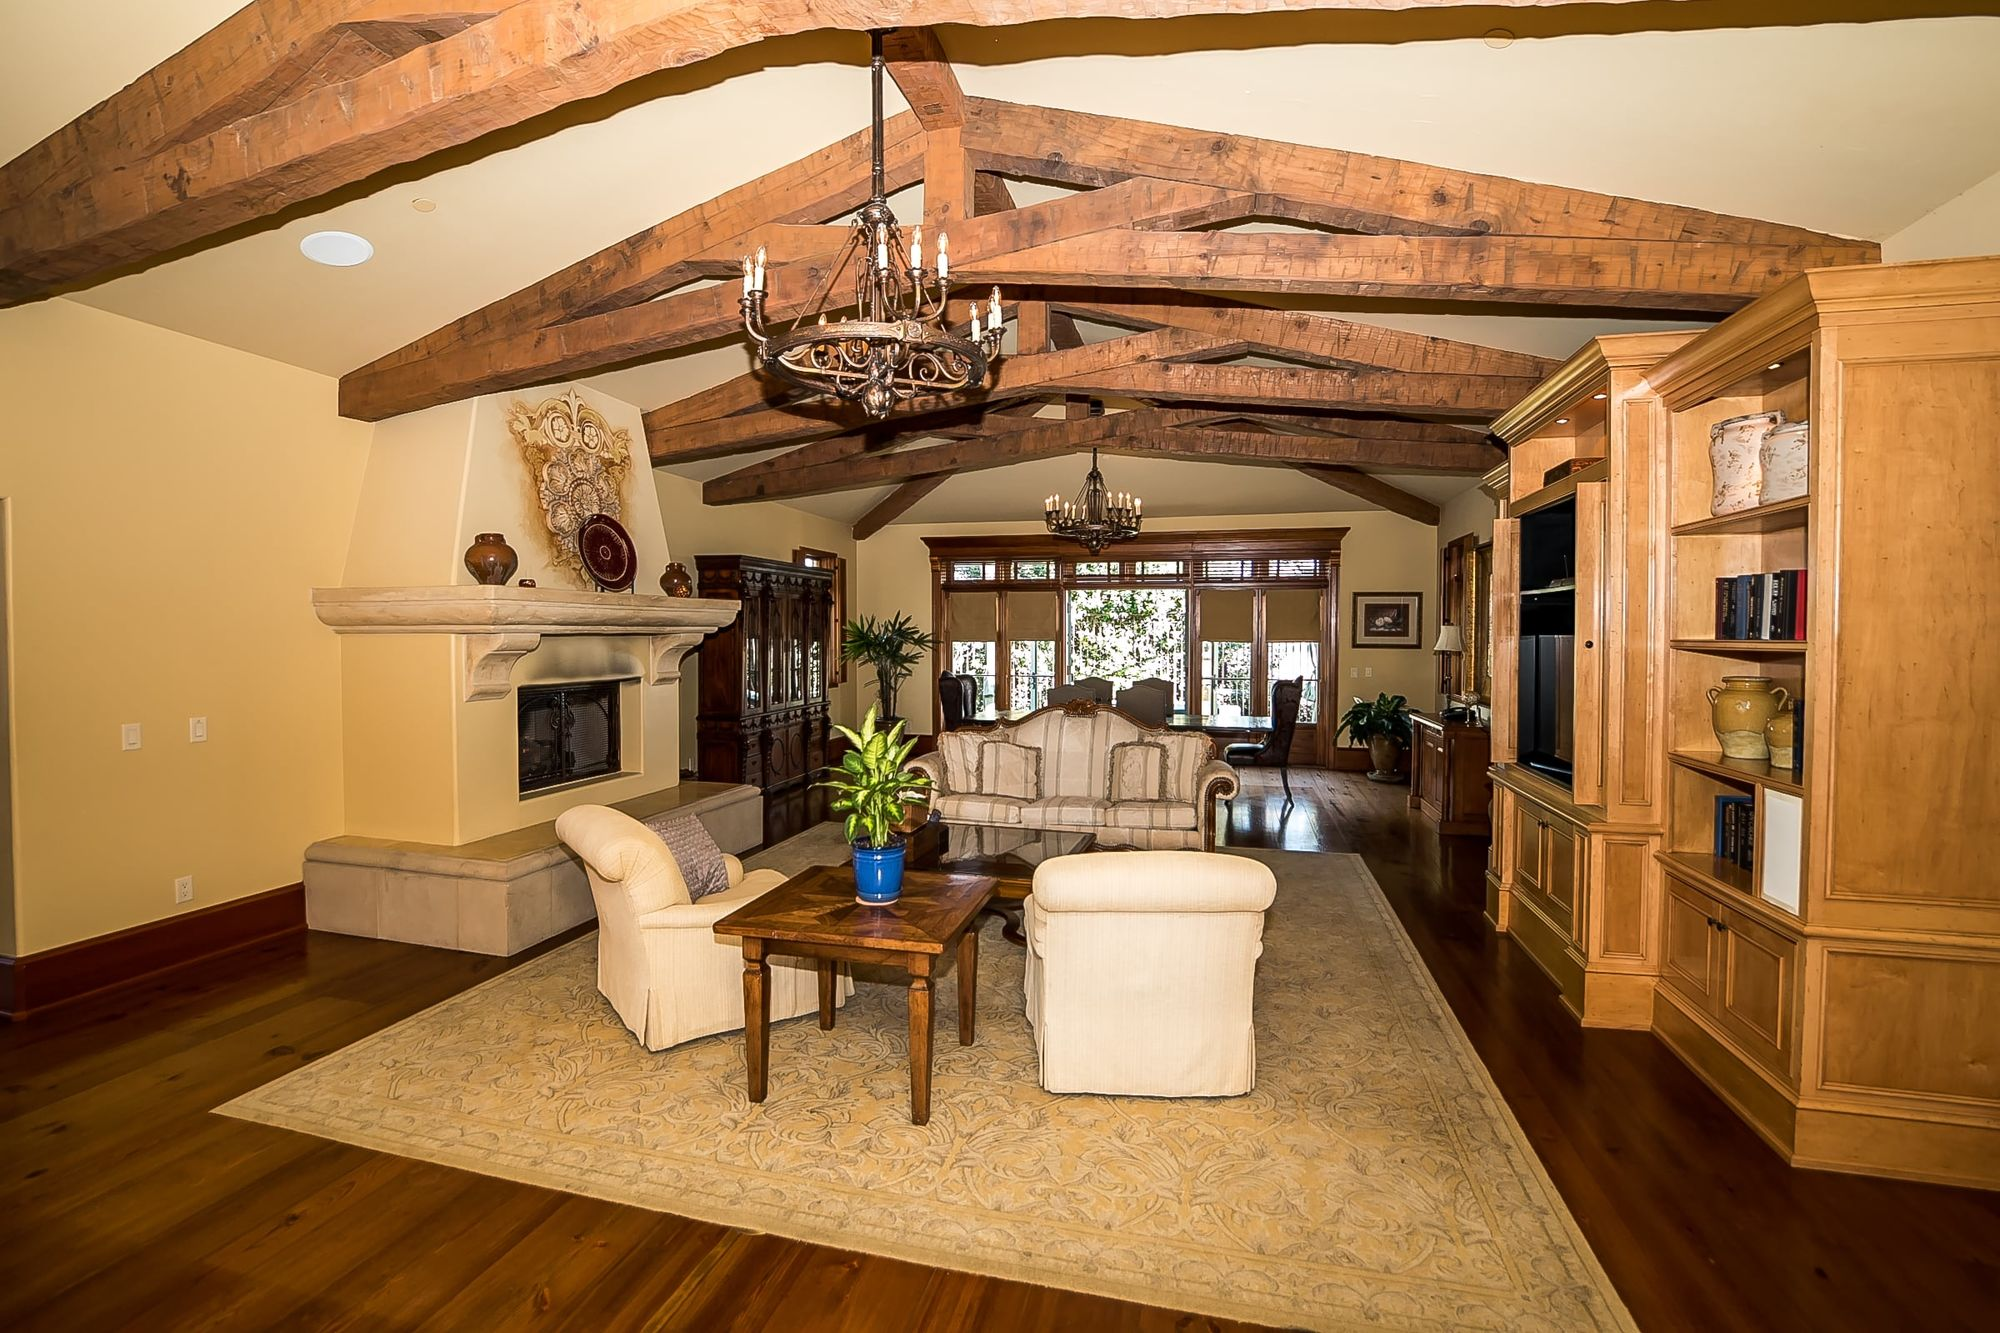 Sitting room with decorative fireplace, television cabinet, chandeliers suspended from the ceiling with rafters